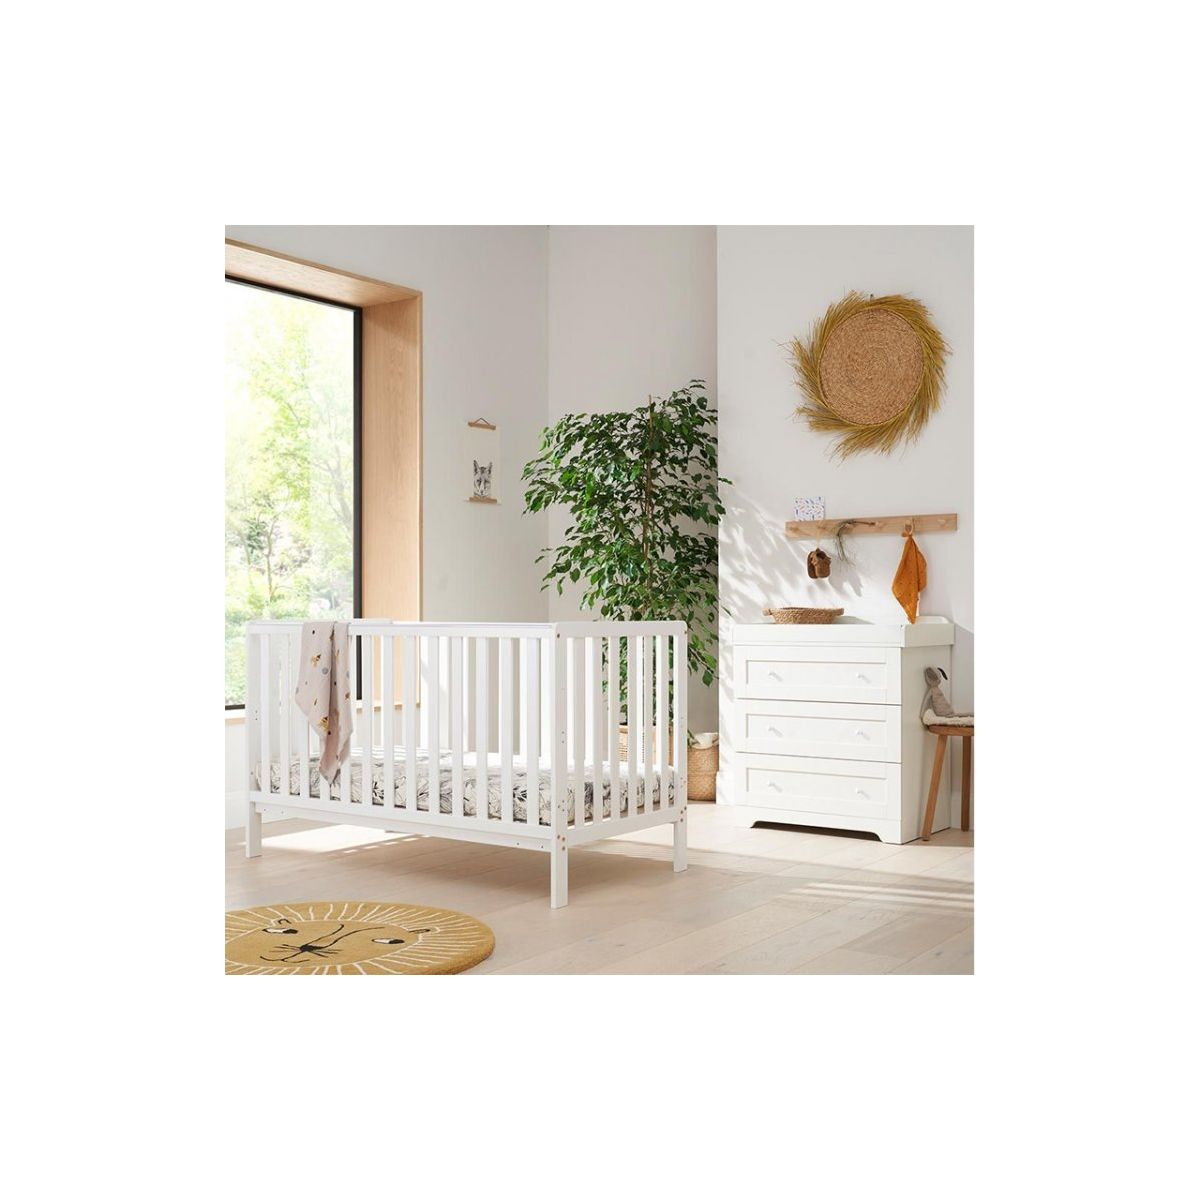 Tutti Bambini Malmo 2 Piece Room Set with Cot Top Changer-White